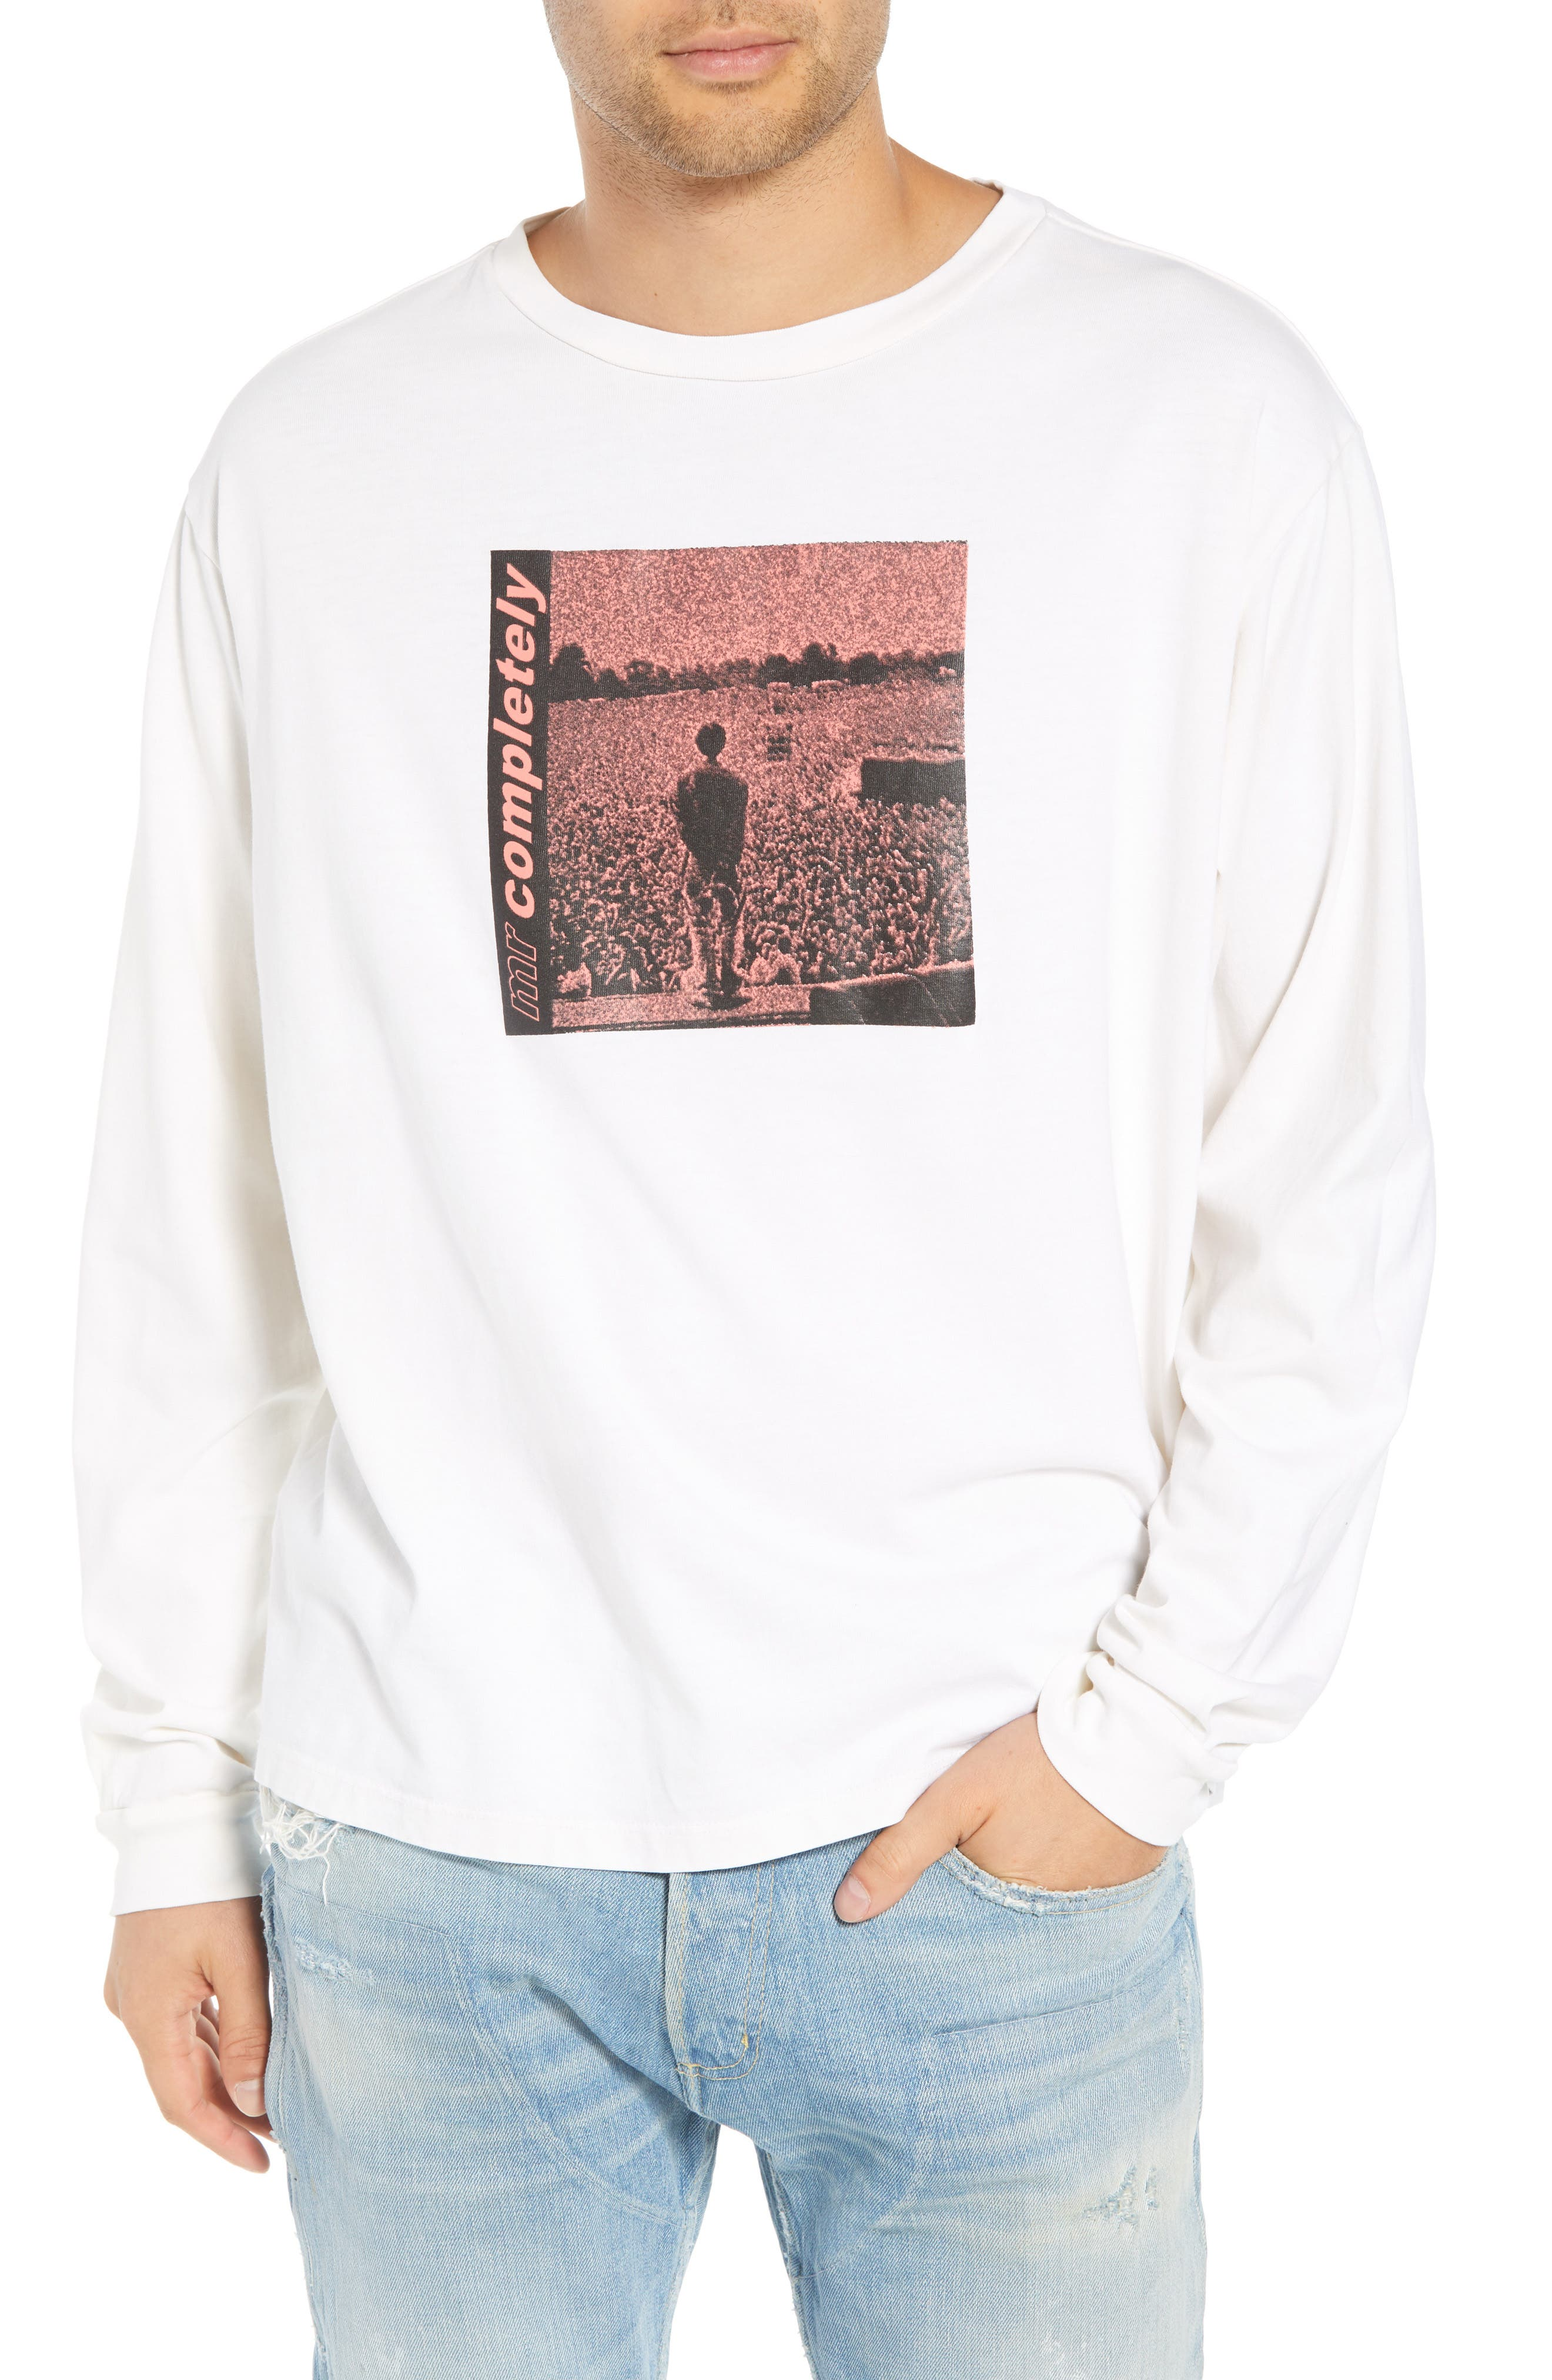 MR. COMPLETELY Oasis Oversize Long Sleeve T-Shirt in White